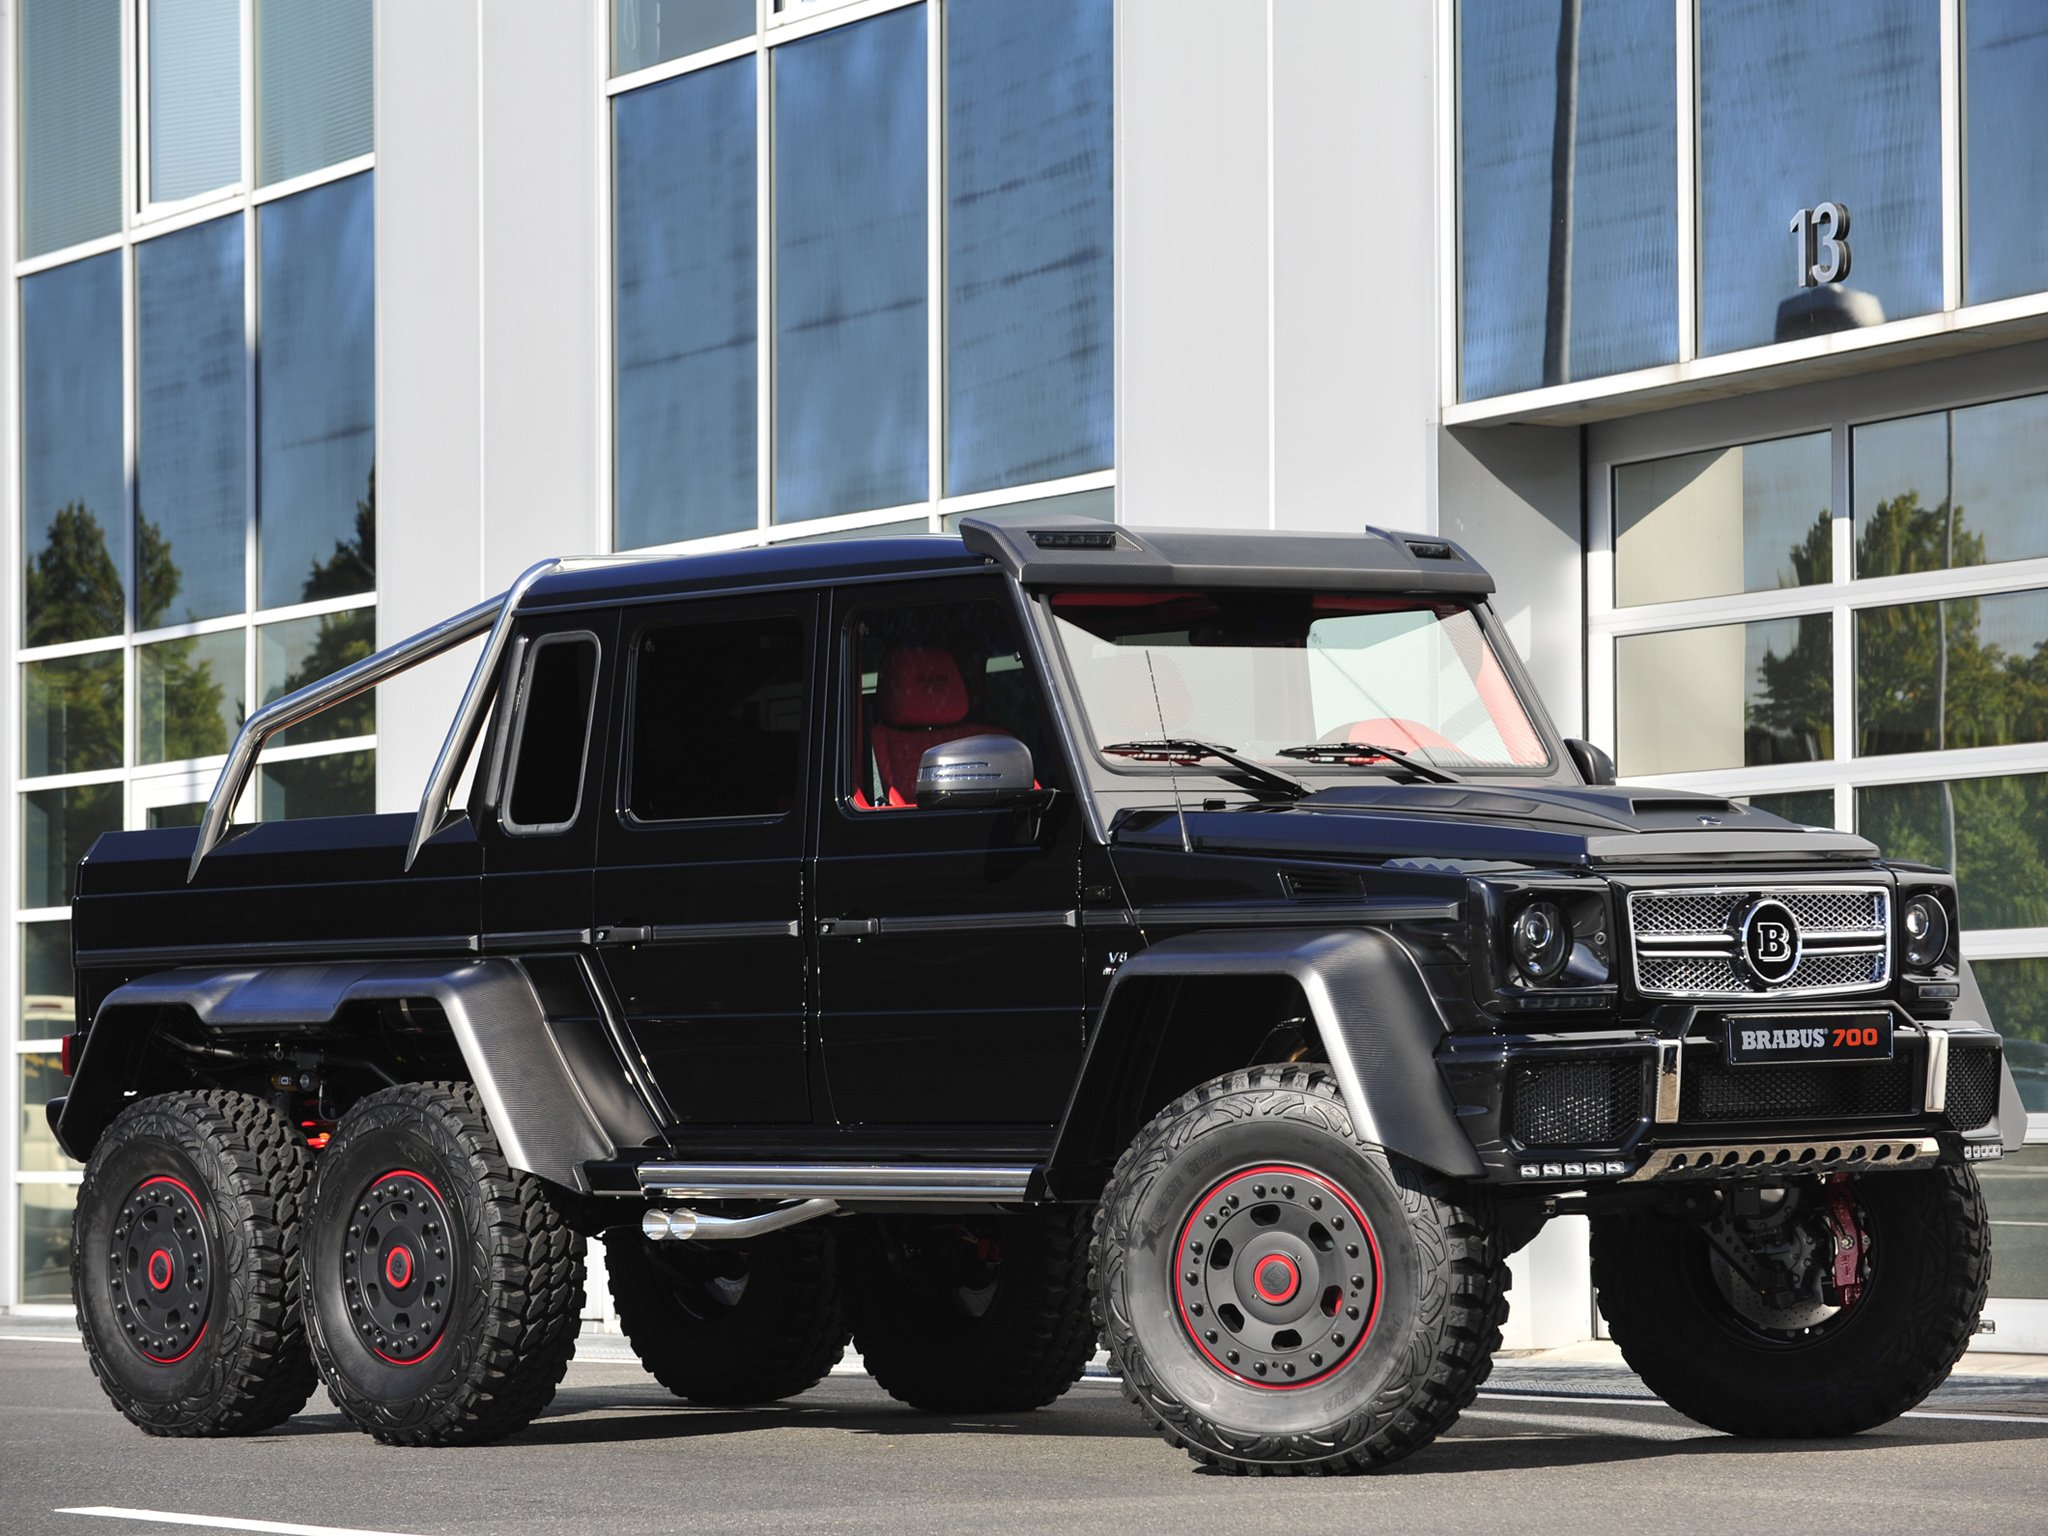 2013 brabus mercedes benz g63 amg 6x6 w463 suv custom offroad tuning pickup t wallpaper 2048x1536 287522 wallpaperup - Mercedes G Amg Custom